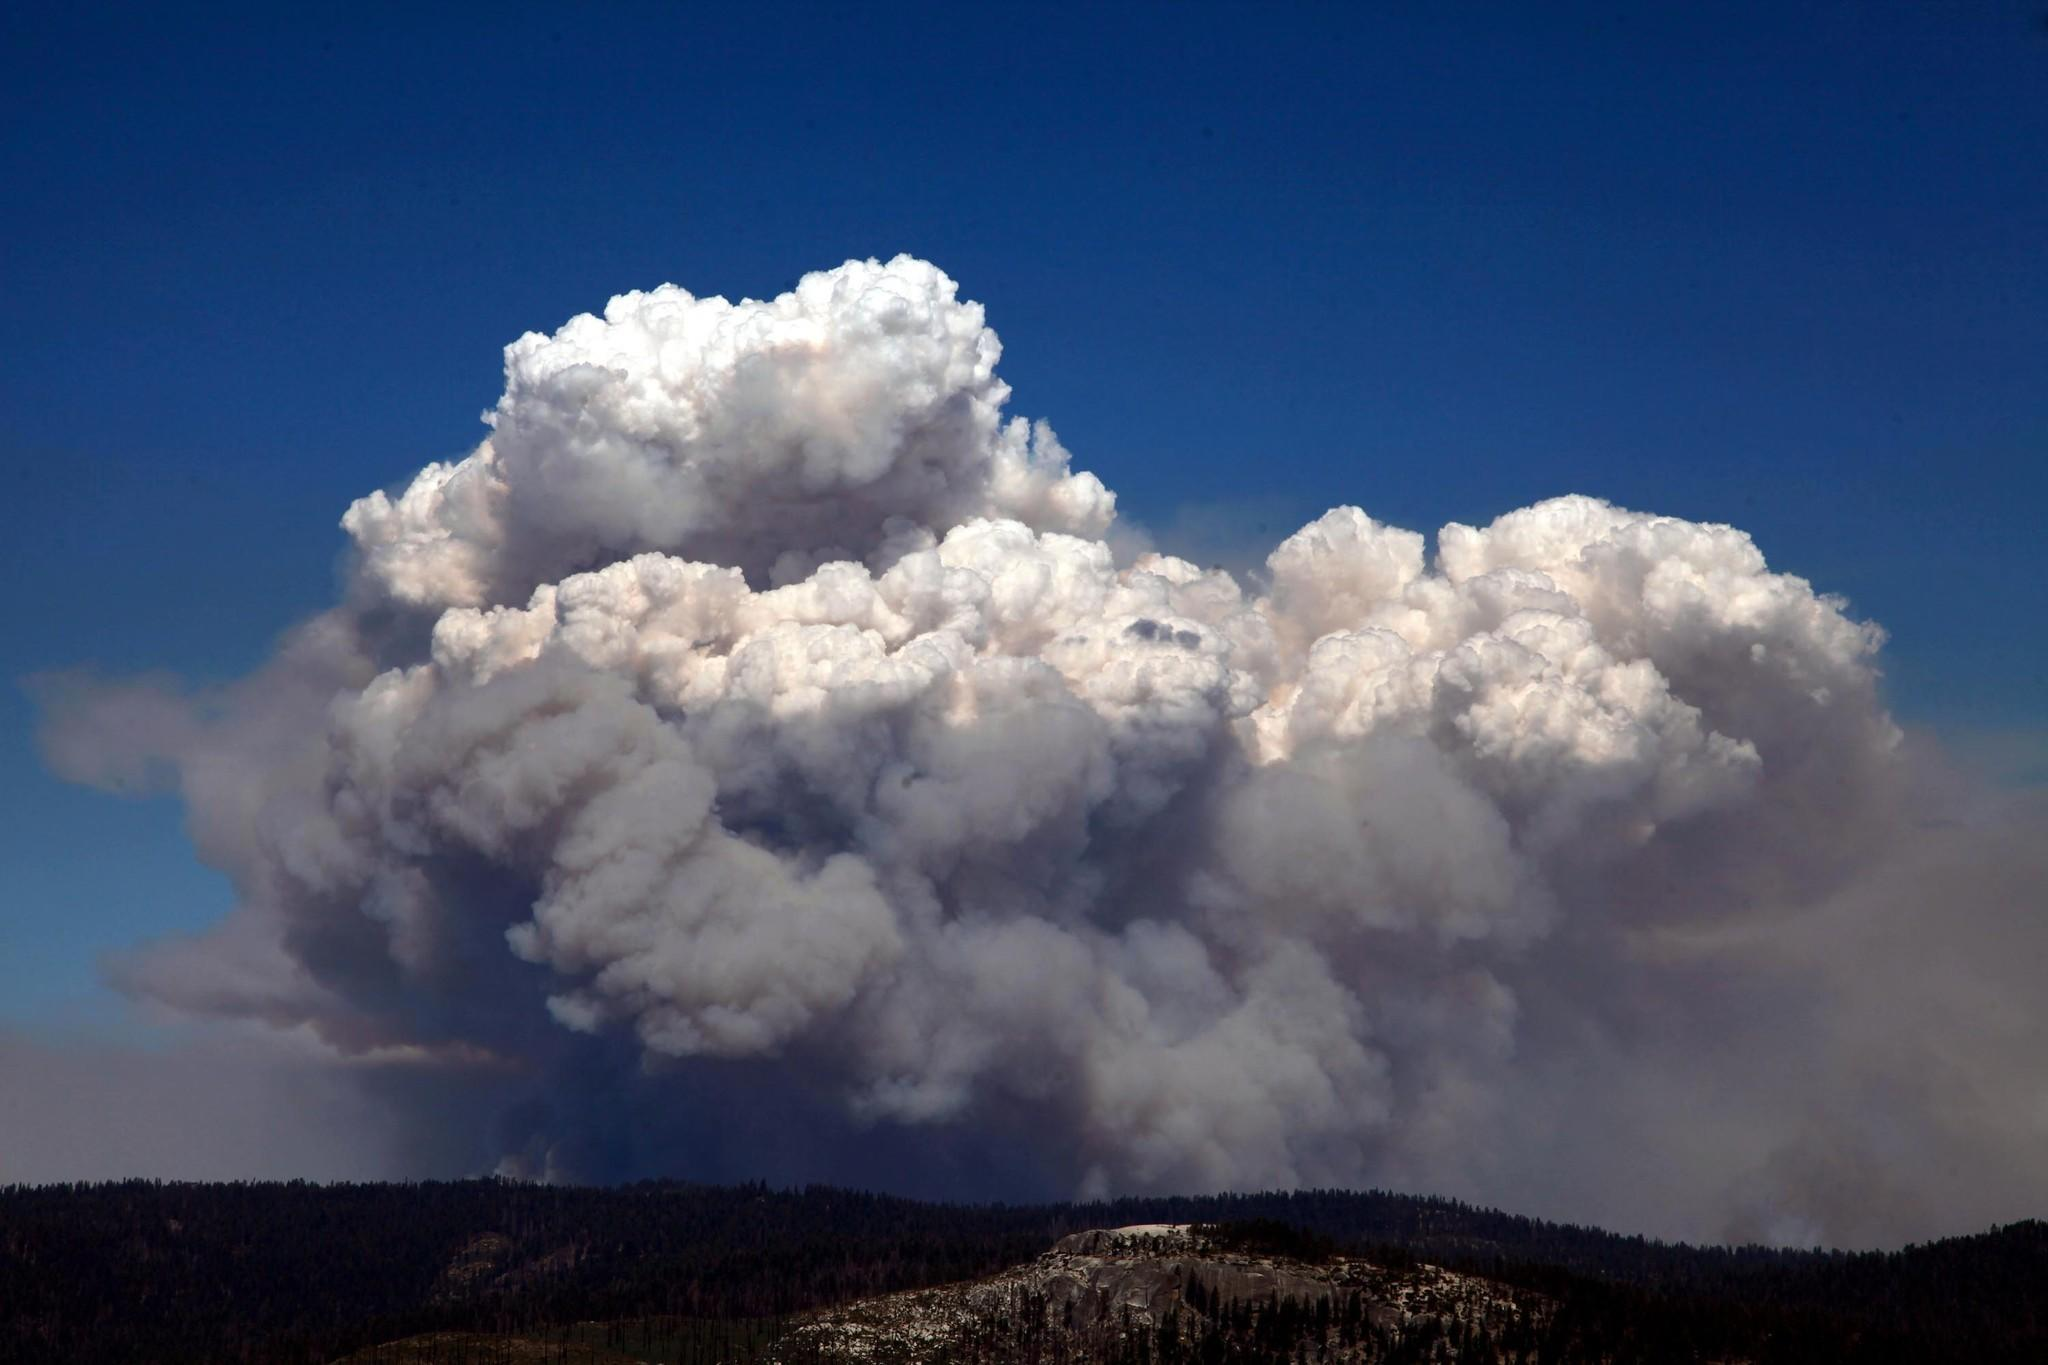 """Last year's massive Rim fire forced the closure of thousands of acres of Yosemite National Park. Areas of the park have been reopened, but park officials cautioned visitors of potential risks such as """"hazardous trees, uneven ground, potential rockfall, and down and dead debris on trails."""""""